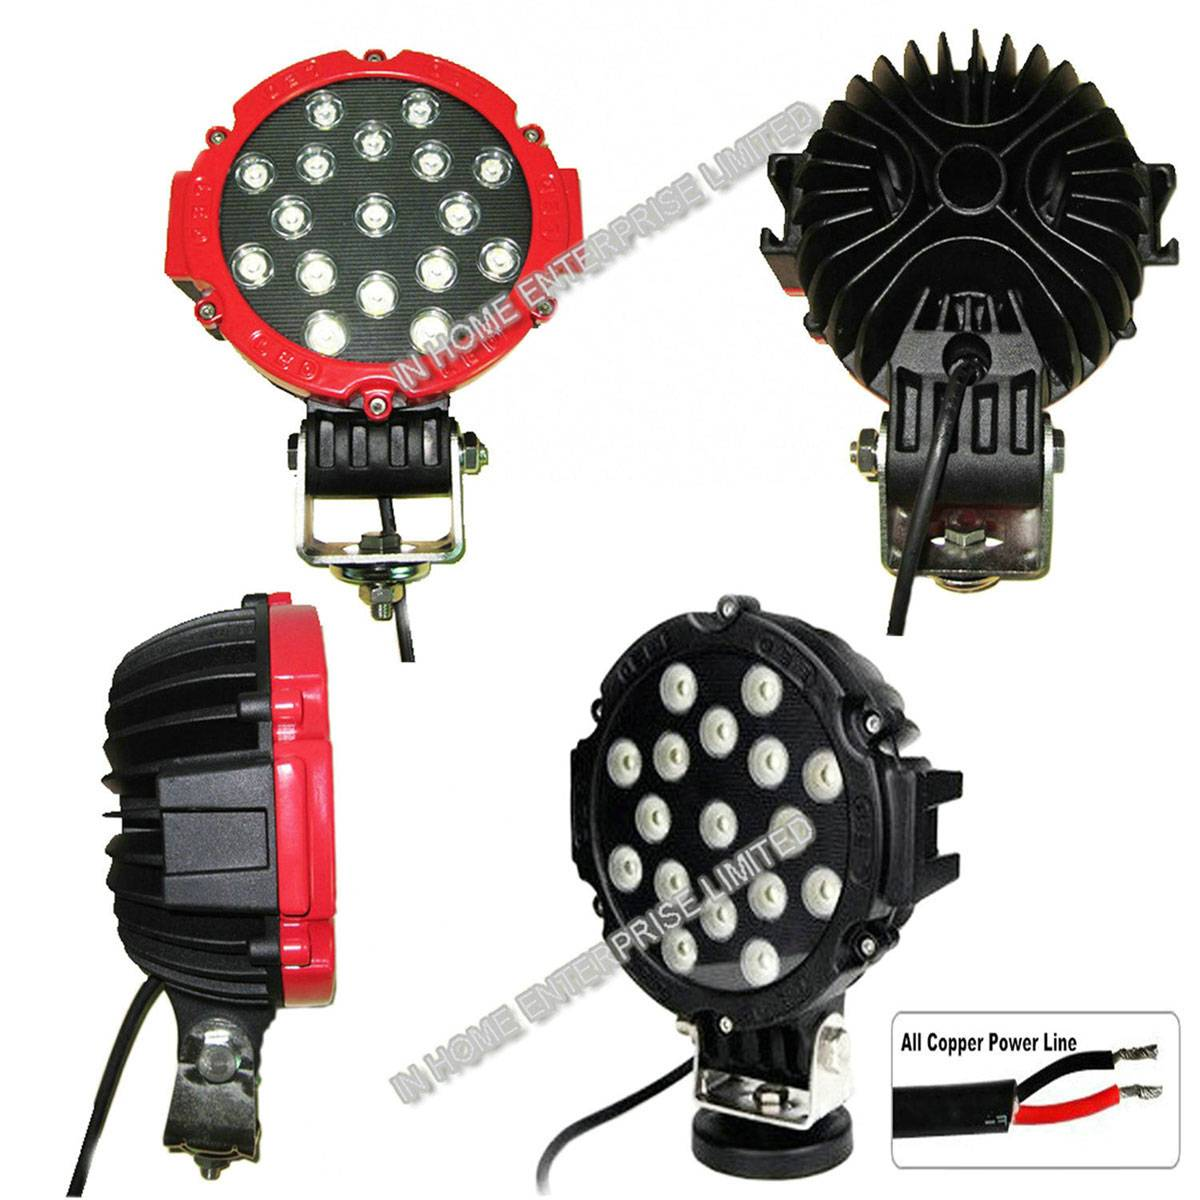 10-30V Round Super Bright IP67 LED Work Lamps 51W 4680LM LED Off Road Light